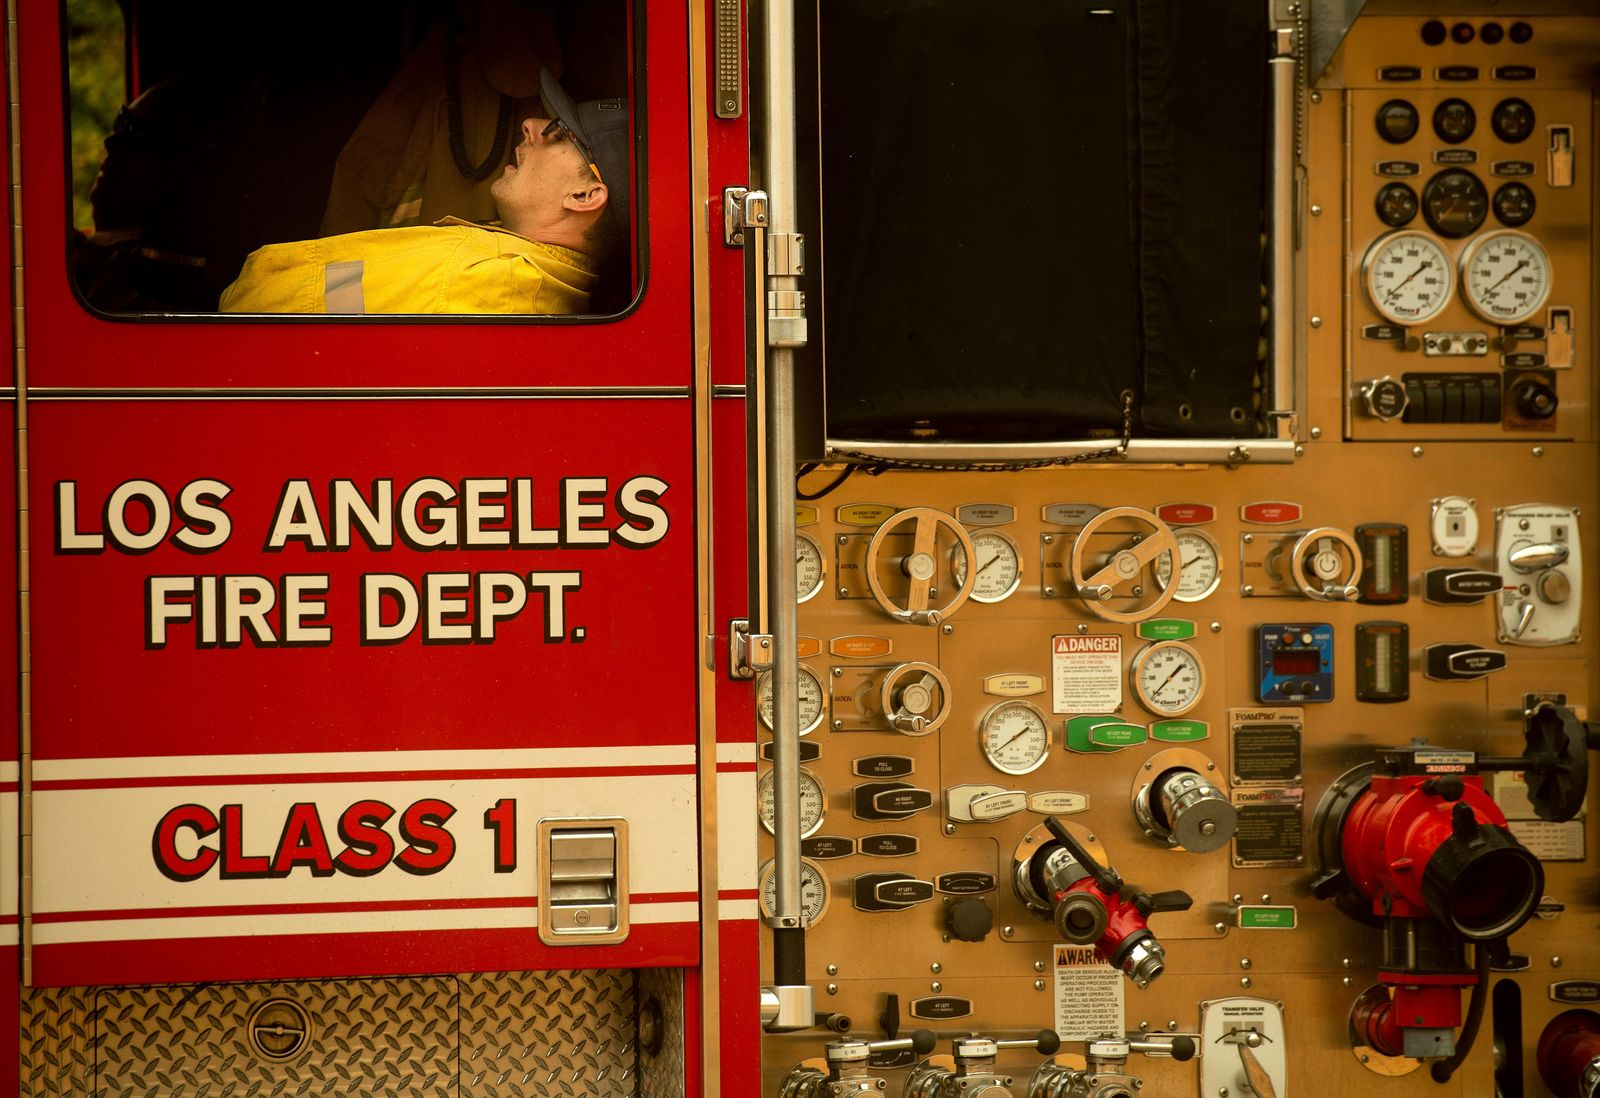 A firefighter rests as crews continue to battle the Saddleridge Fire burning in Porter Ranch, Calif., on Friday, Oct. 11, 2019. (AP Photo/Noah Berger)